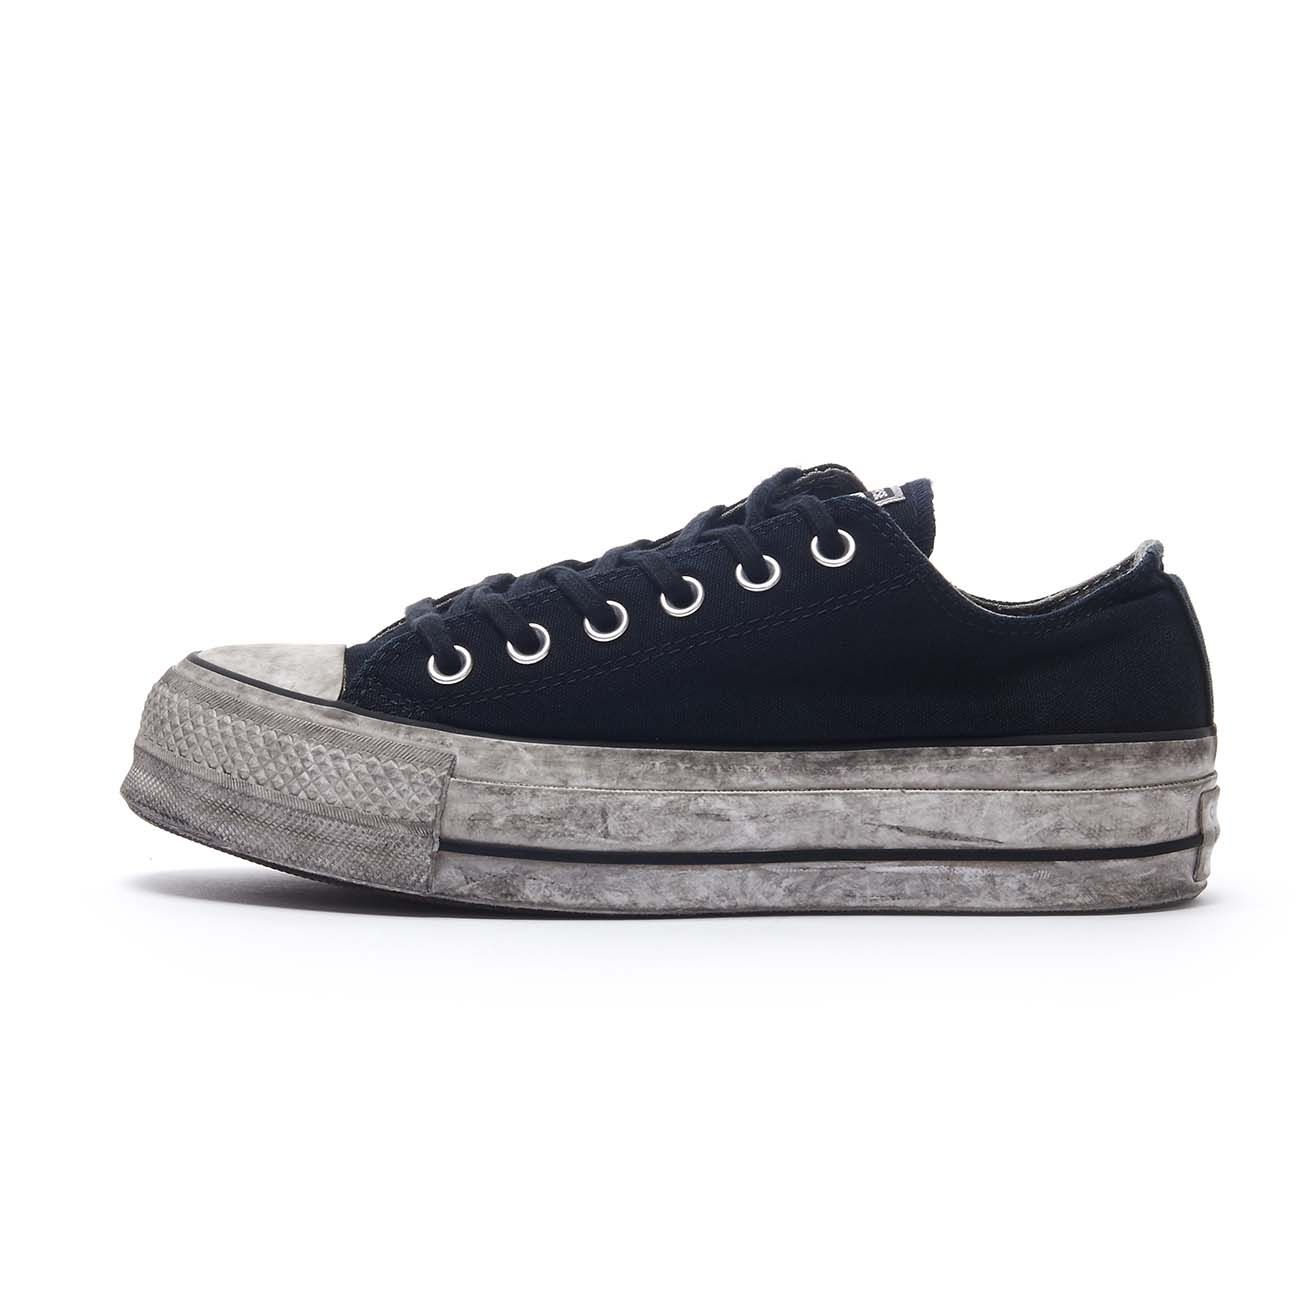 CONVERSE SNEAKERS CHUCK TAYLOR ALL STAR LIFT CANVAS LTD Donna ...